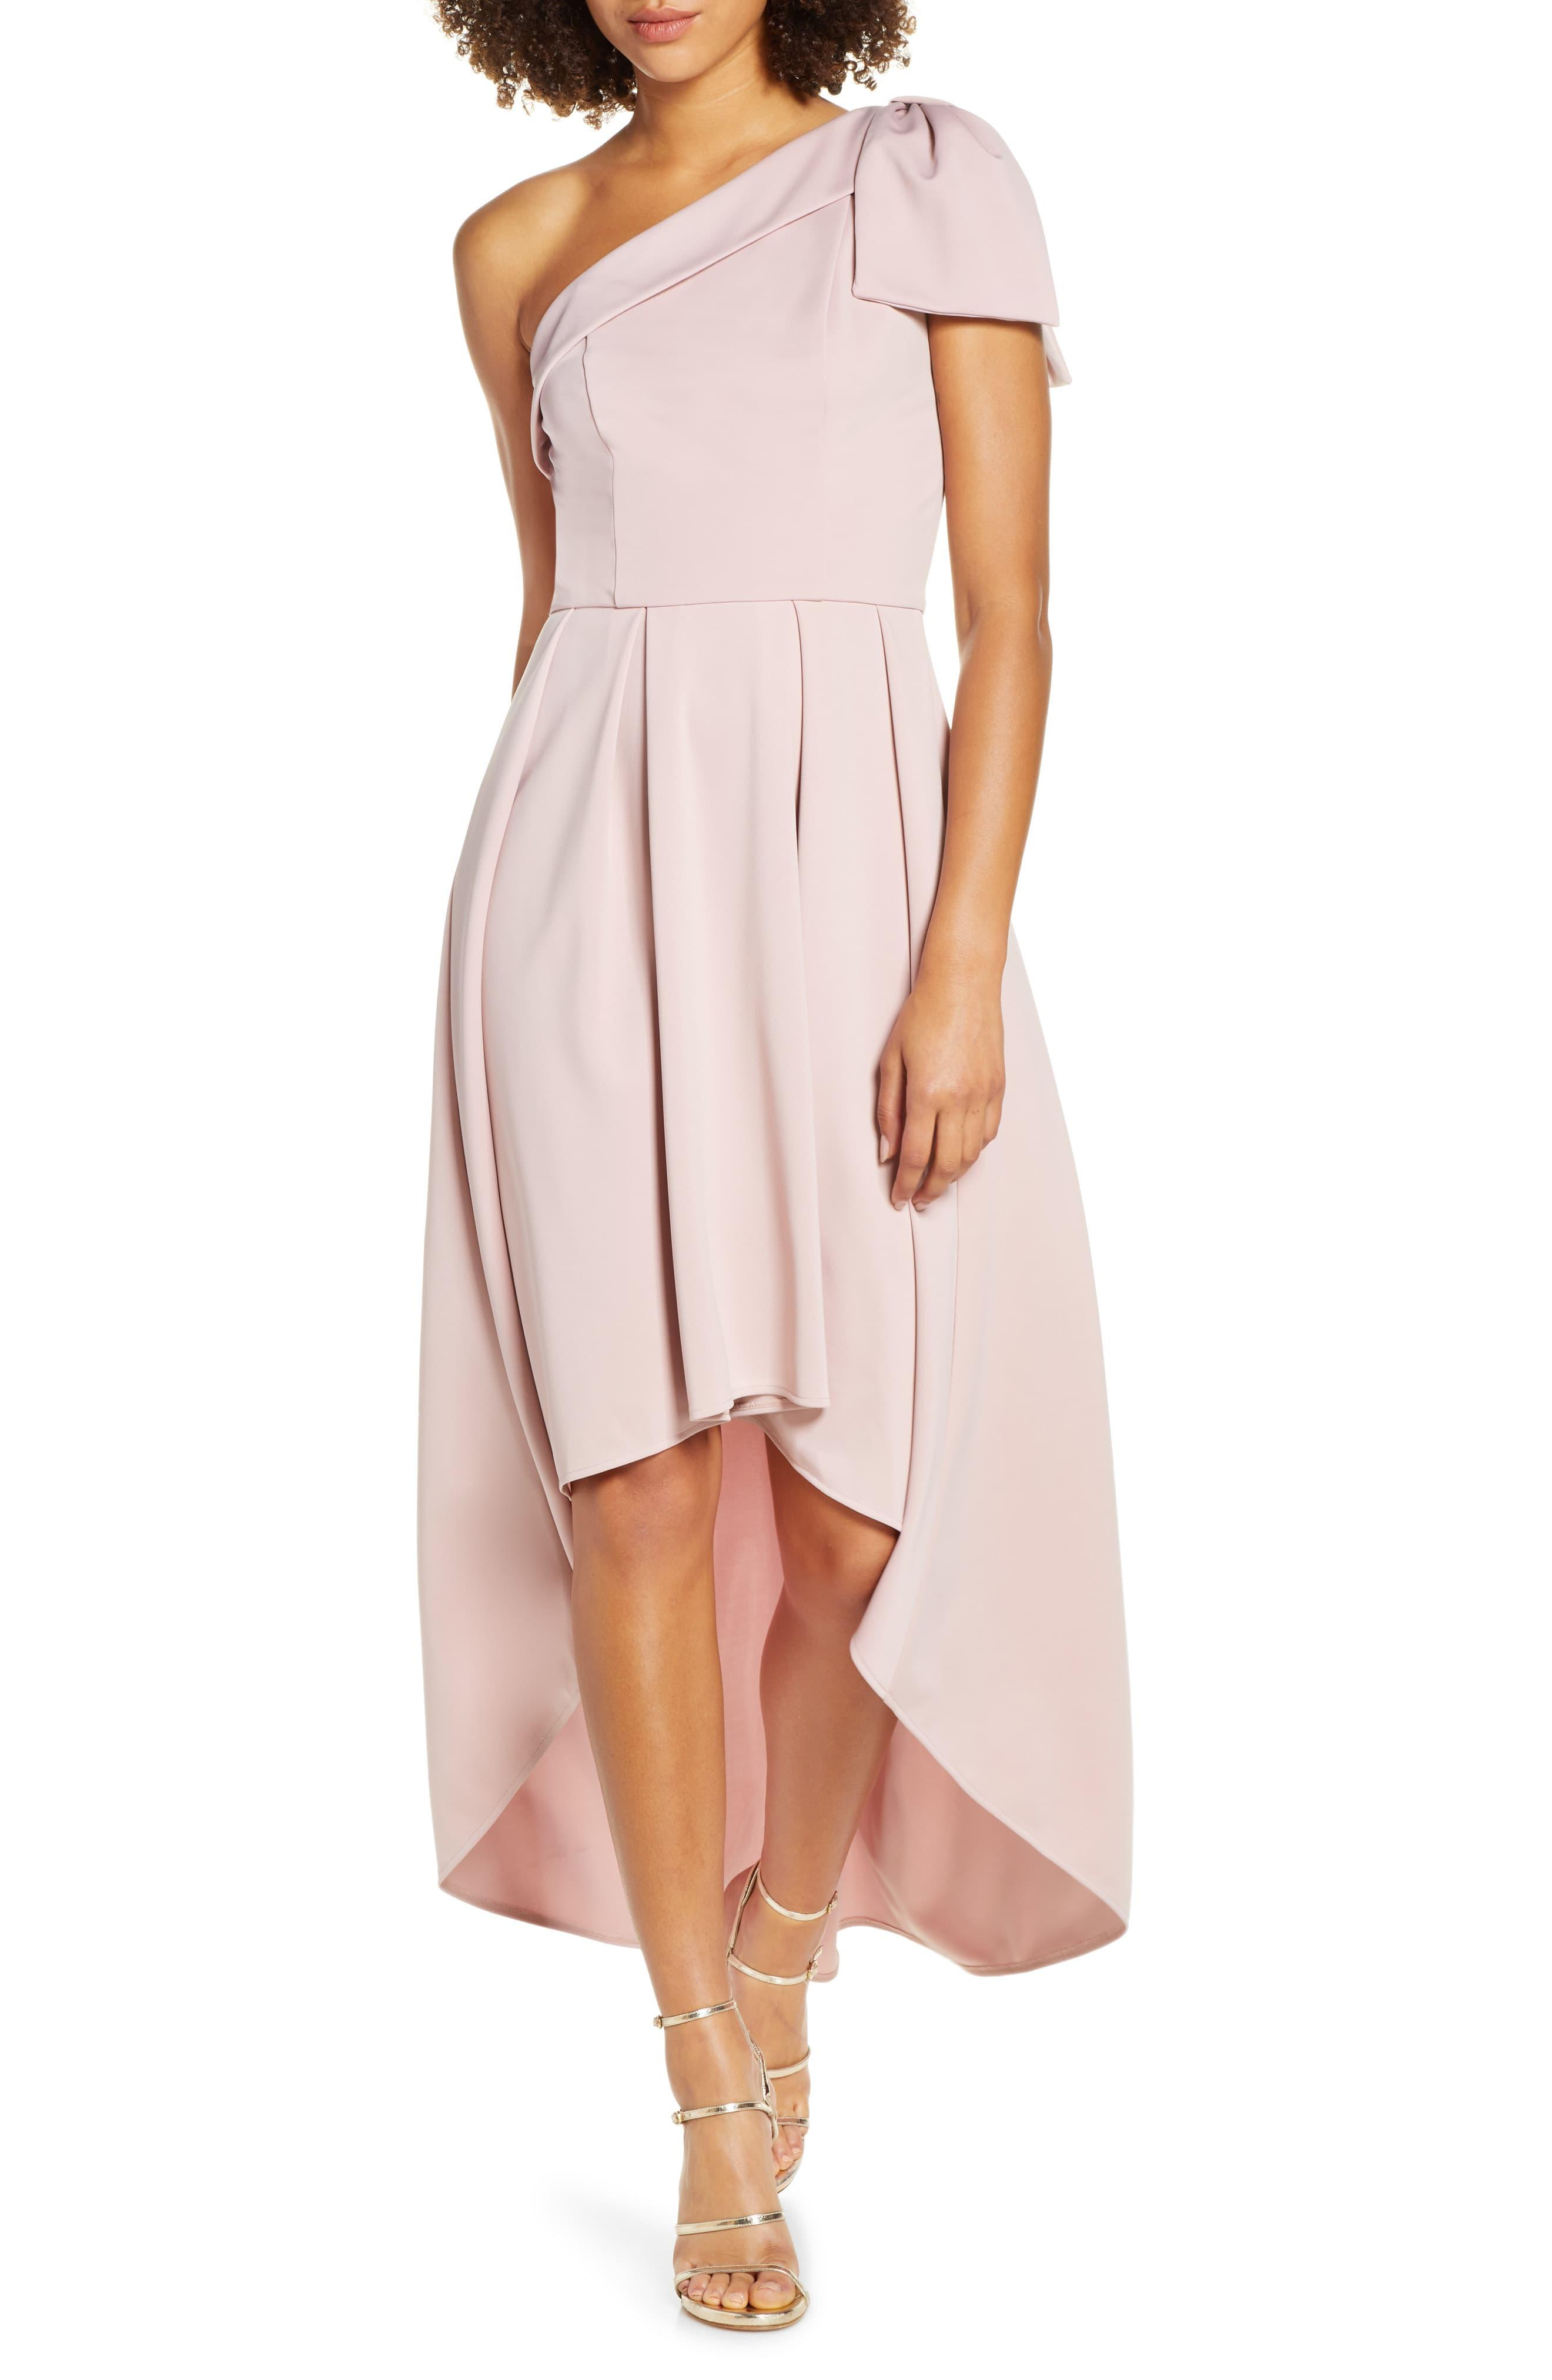 99e3e76c3d2 Chi Chi London One-shoulder High/low Party Dress in Pink - Lyst